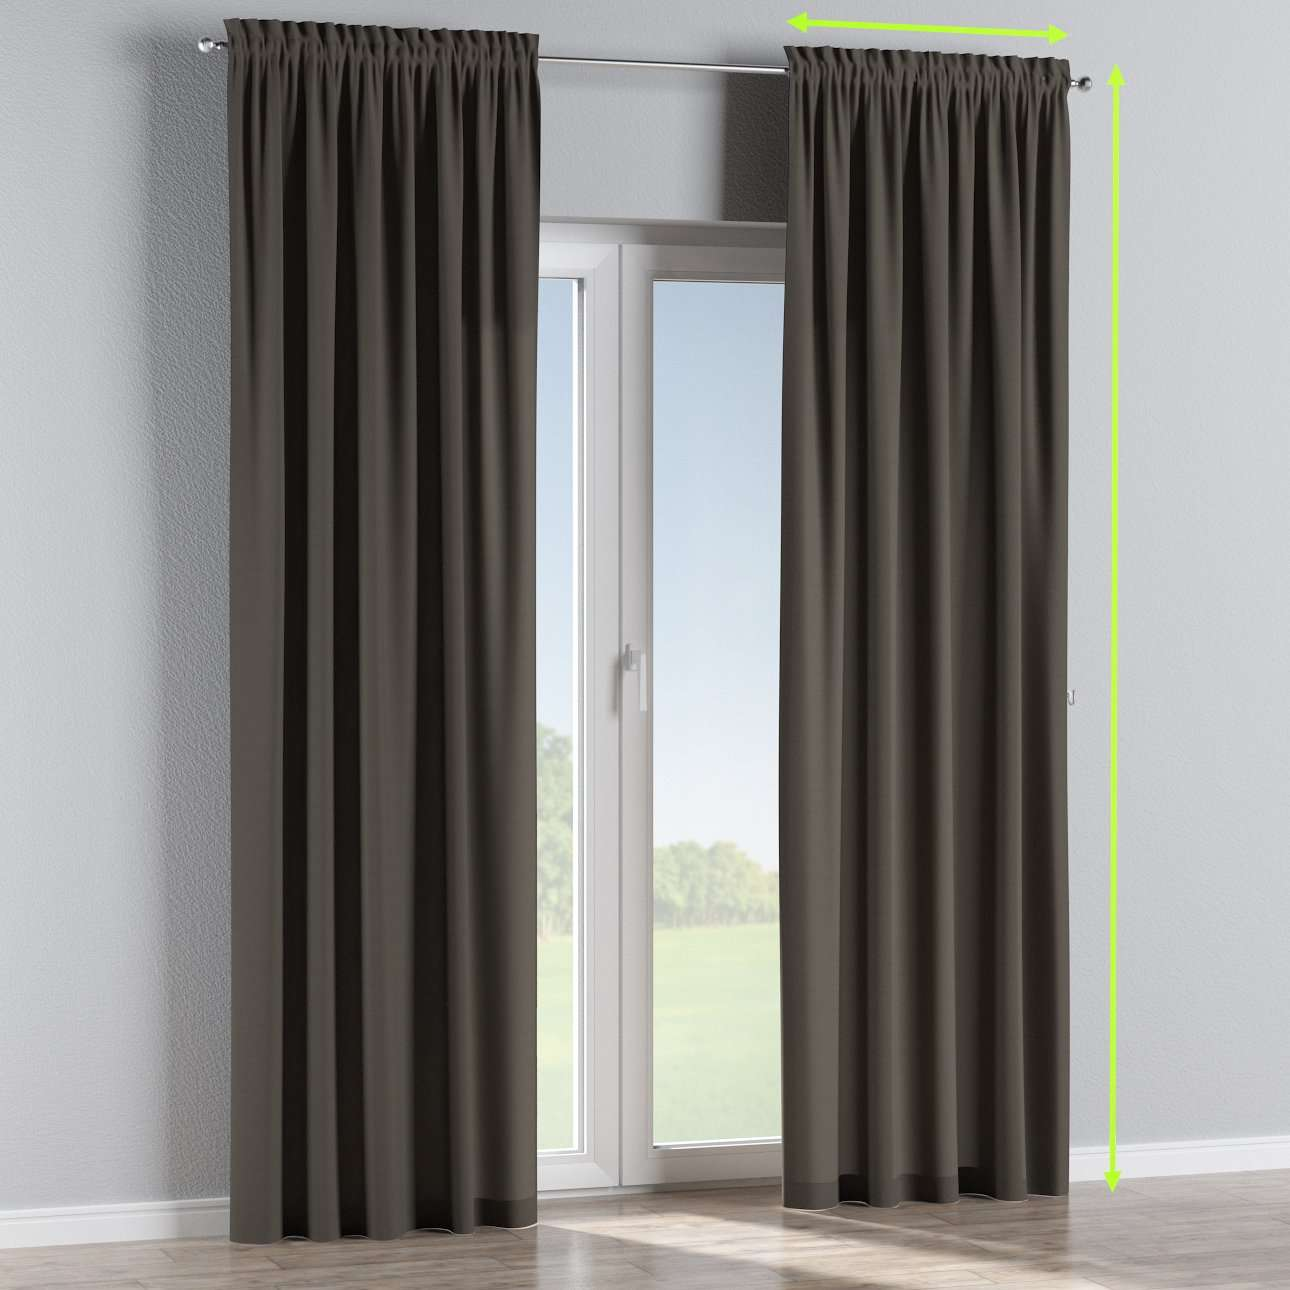 Slot and frill lined curtains in collection Cotton Panama, fabric: 702-08